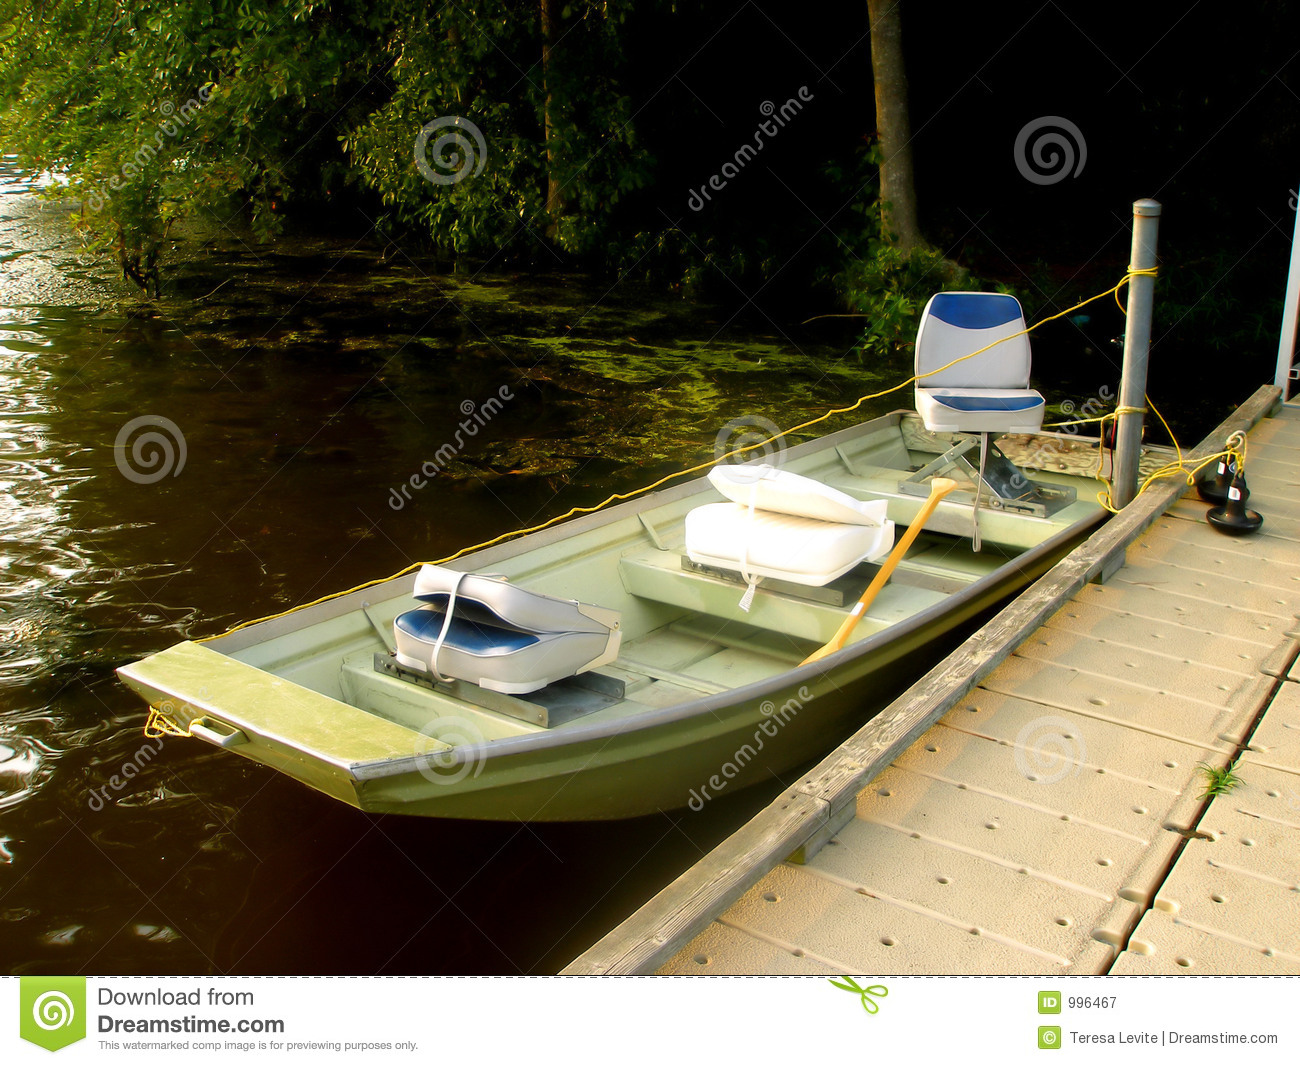 small sport fishing boat in lake royalty free stock